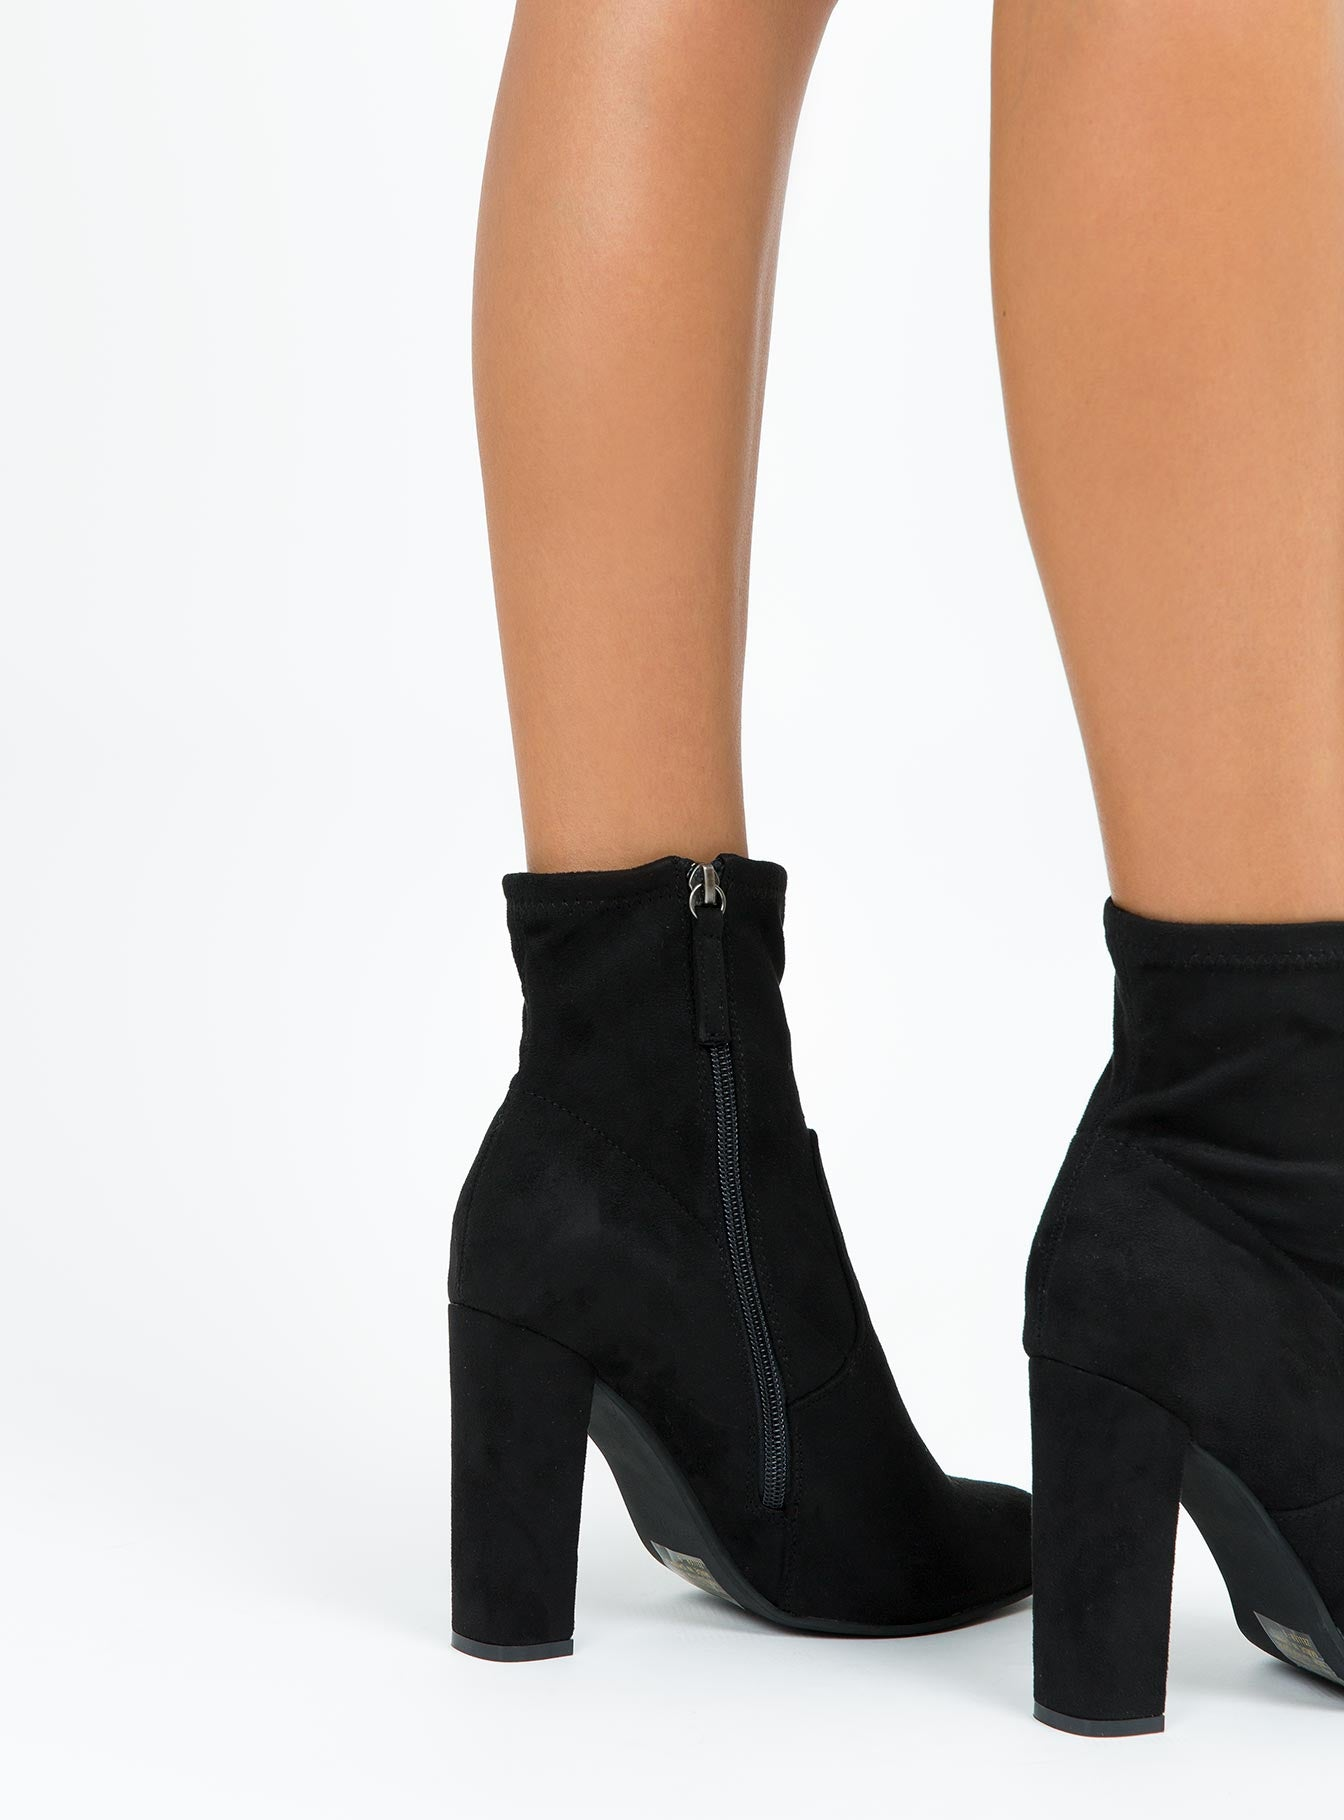 Therapy Black Zeller Boots